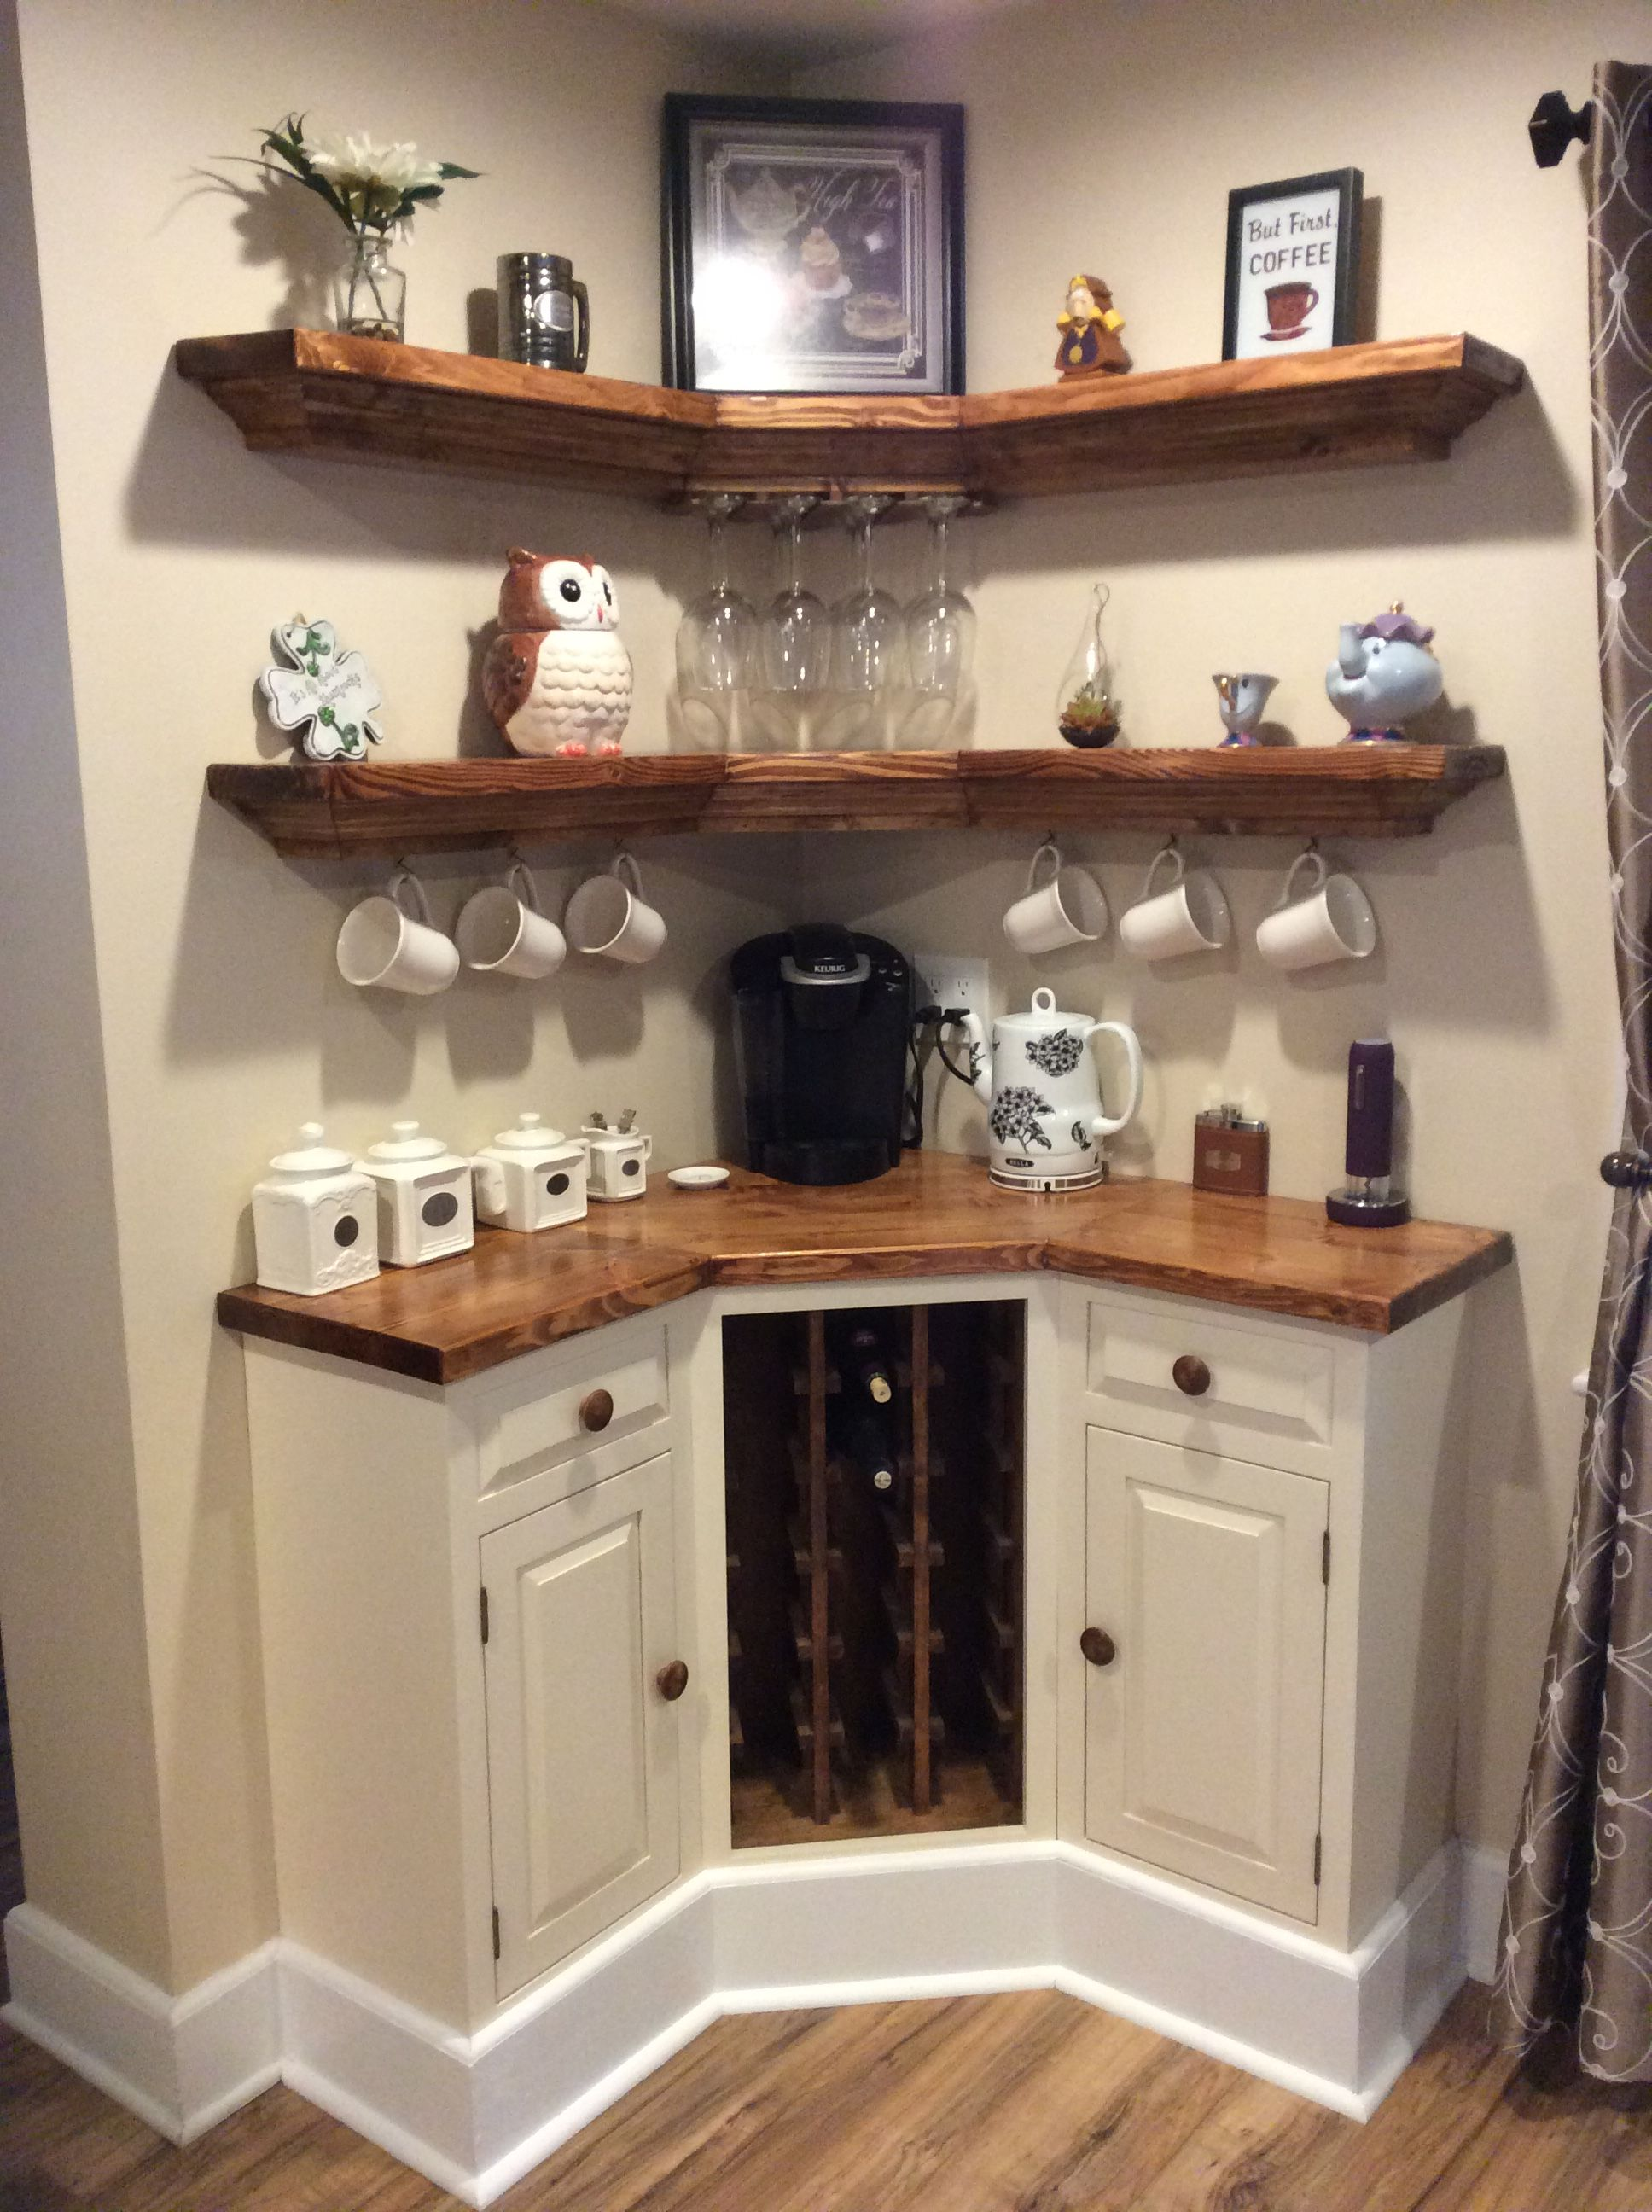 Built in Corner coffee wine bar Home ideas Pinterest Wine